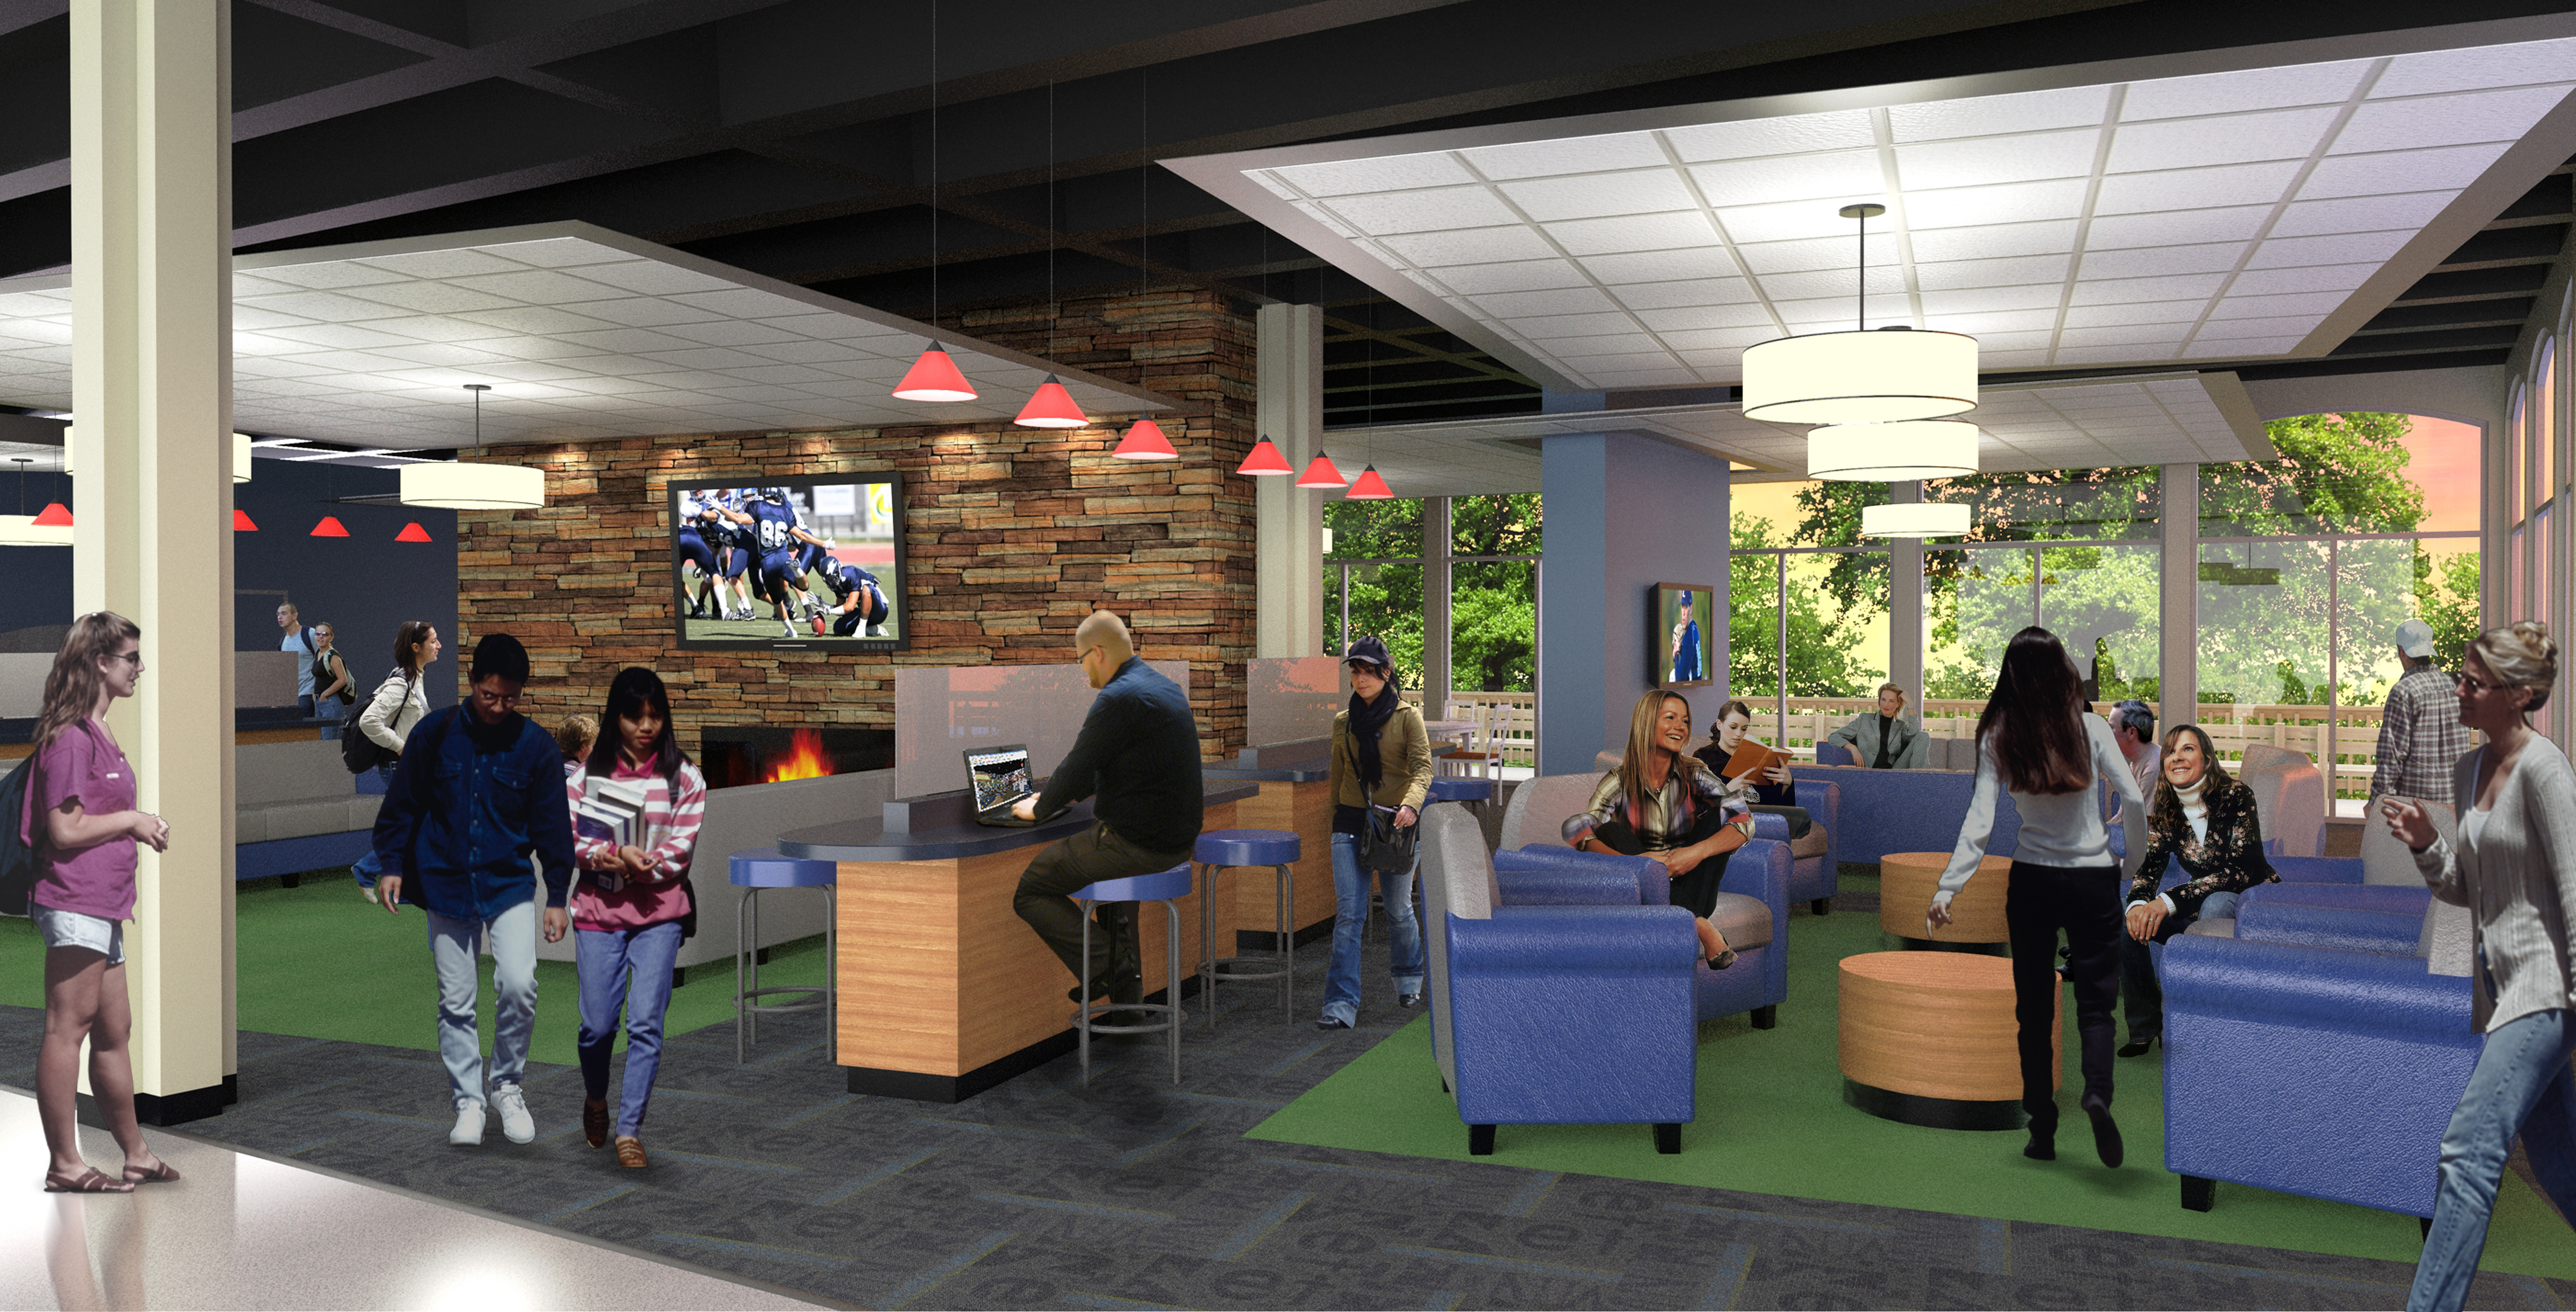 When renovations are complete this fall, the top floor lounge of Janzow Campus Center at Concordia University, Nebraska will feature new furniture, flat screen TVs and stonework wall partitions complete with a gas fireplace as shown in this 3-D rendering.